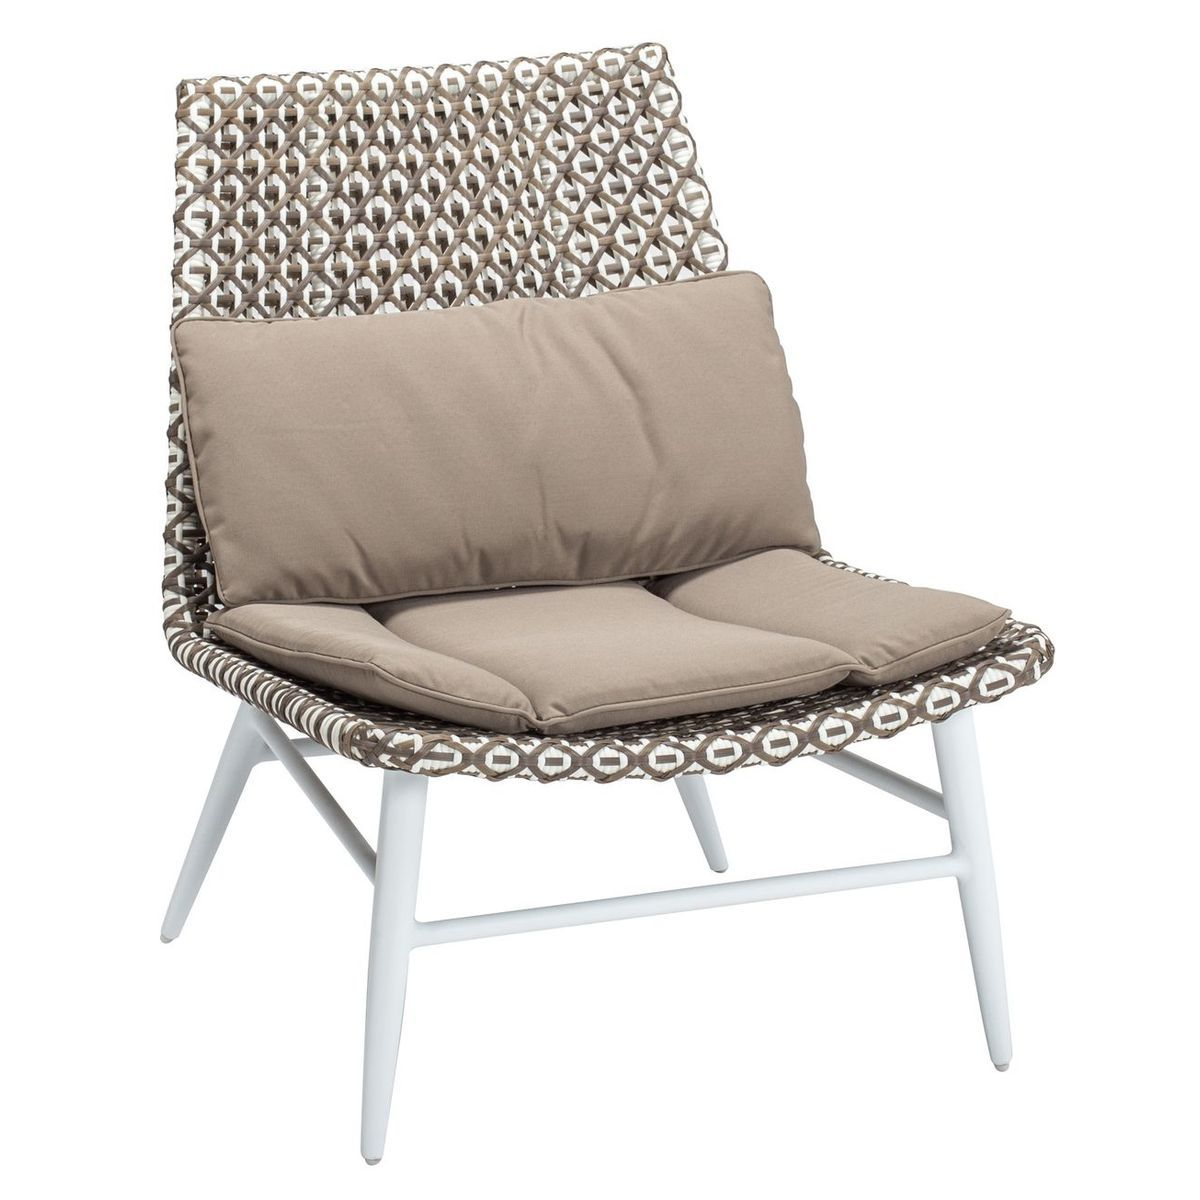 Fauteuil bas taupe